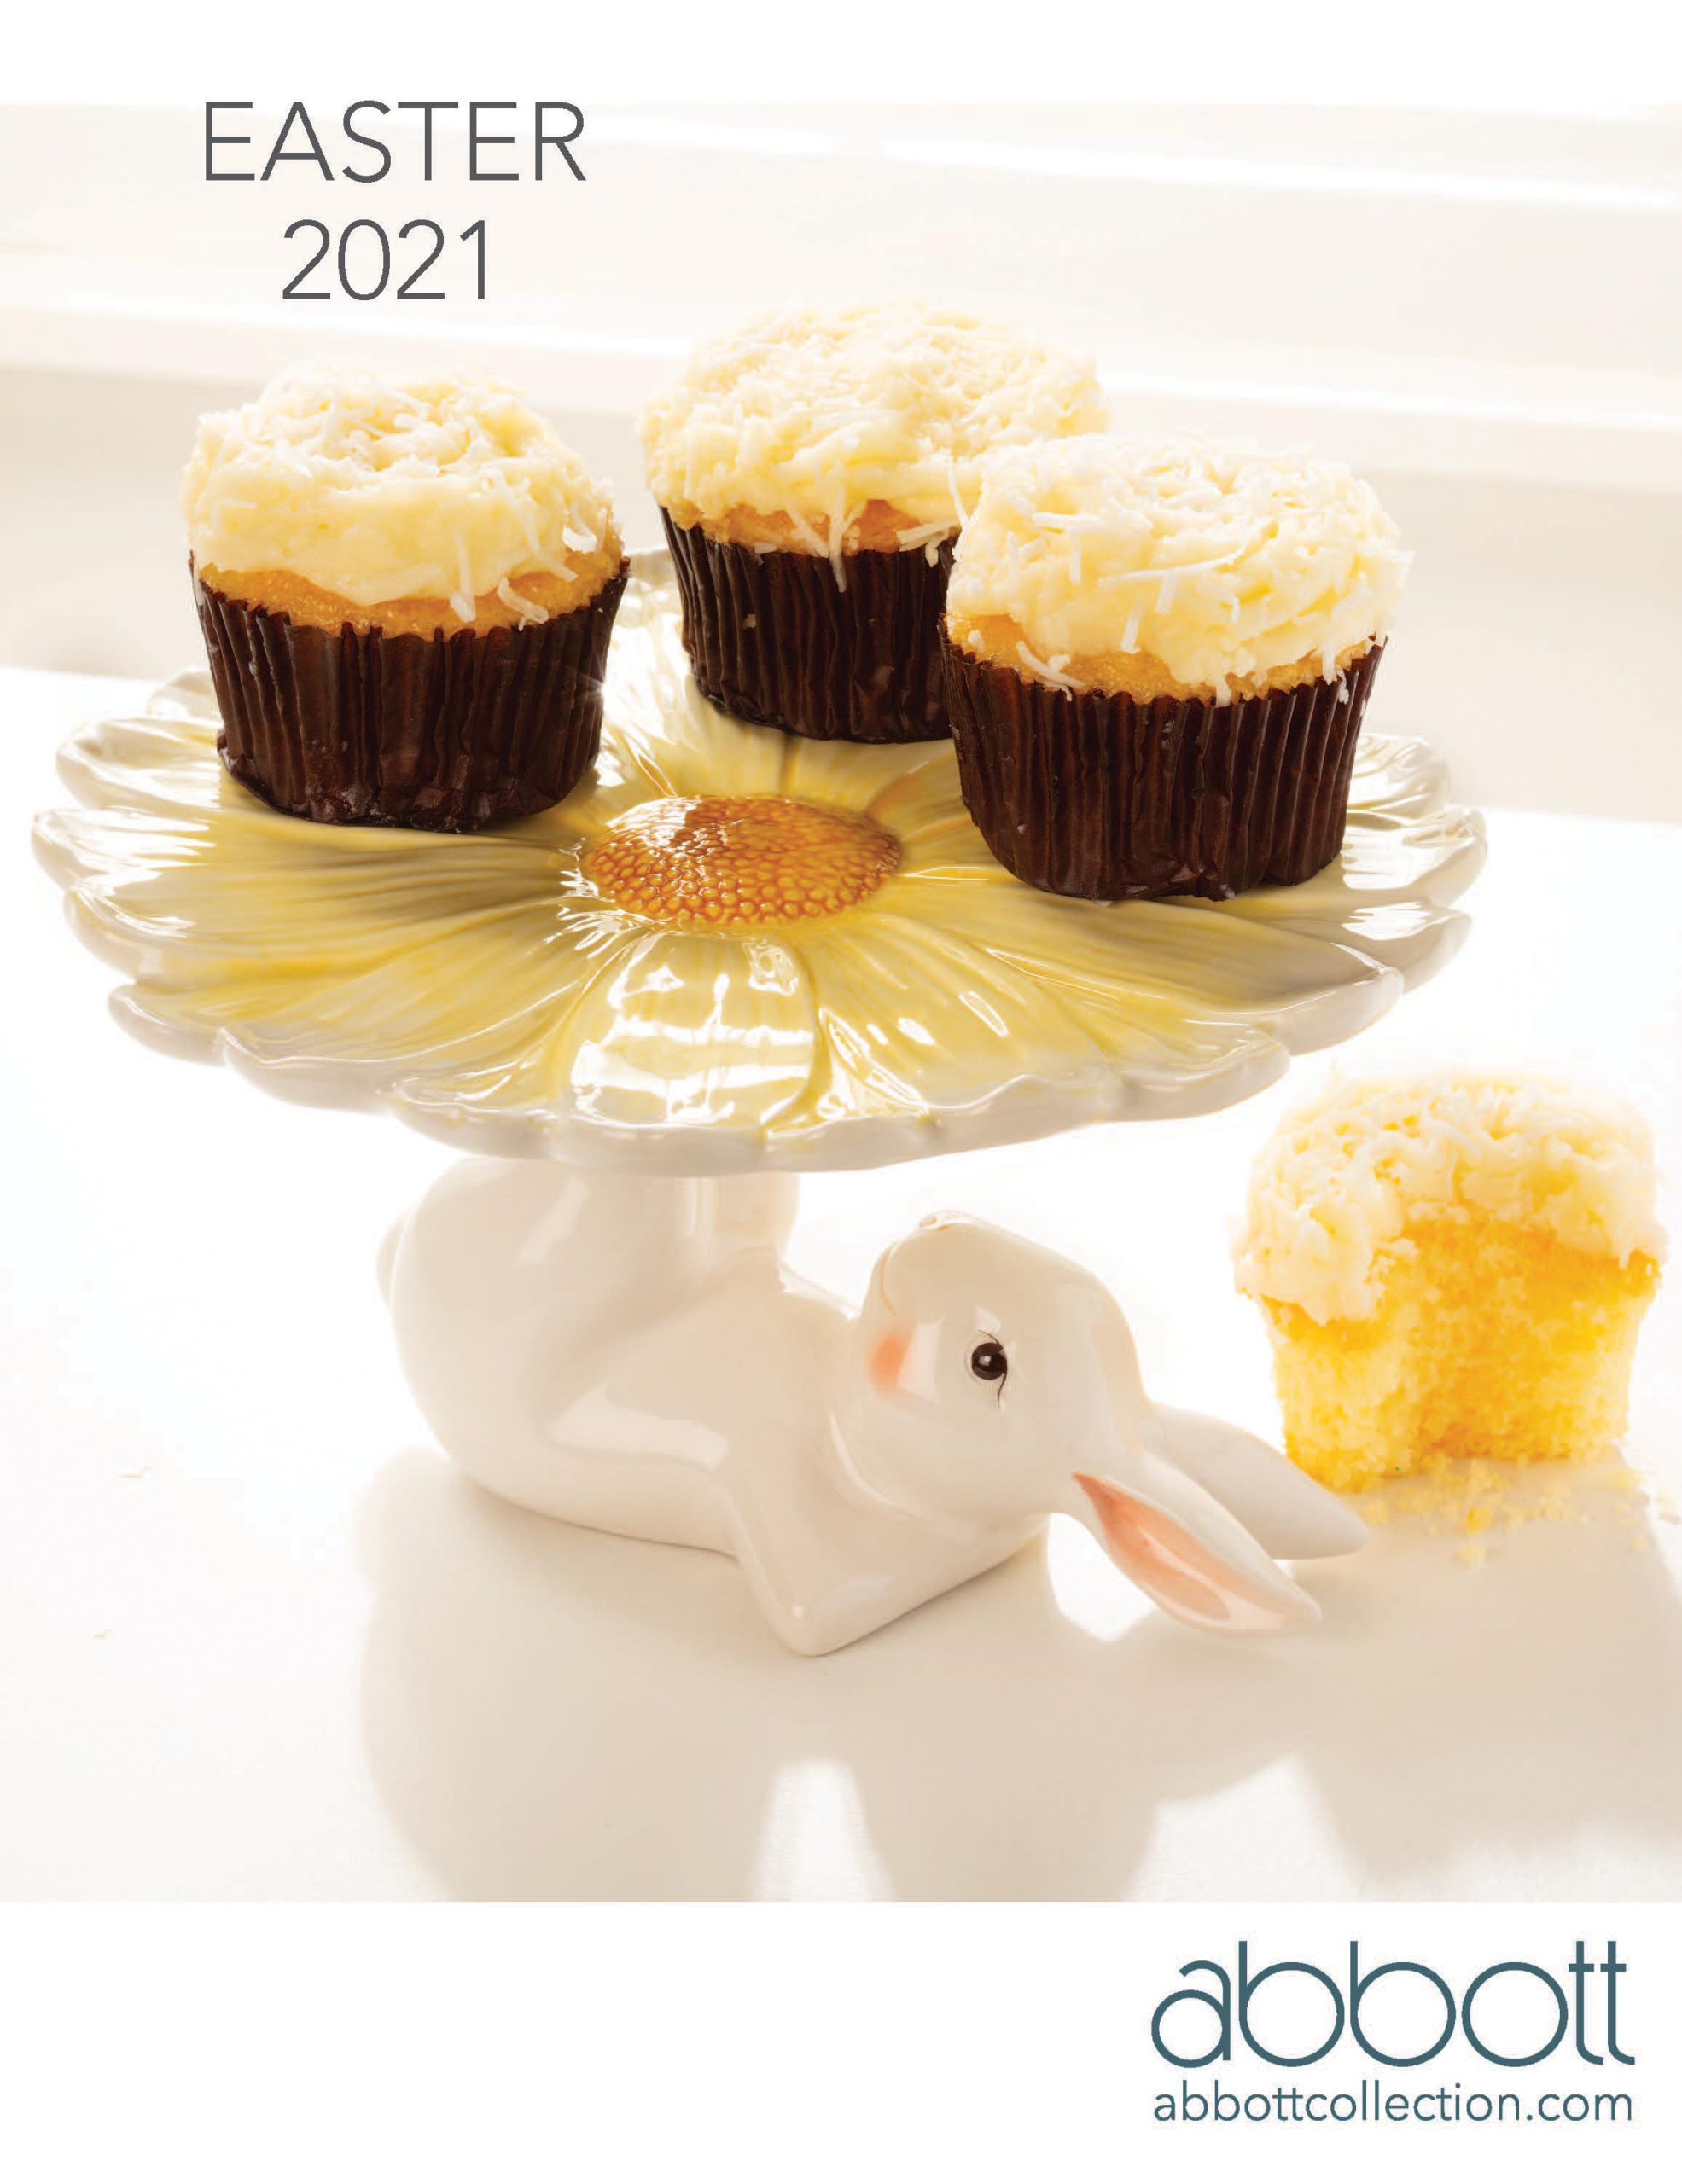 https://assets.abbottcollection.com/wp-content/uploads/2020/11/05094315/Easter-2021-web-1-scaled.jpg